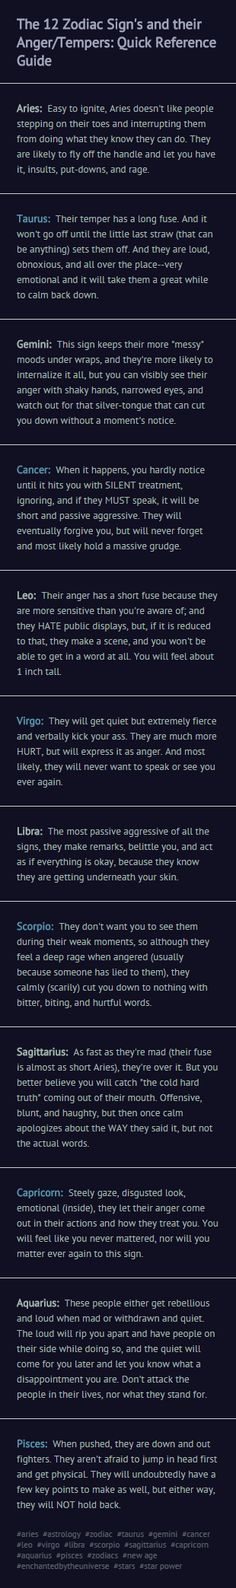 enchantedbytheuniverse.tumblr.com - The 12 Zodiac Sign's and their Anger/Tempers: Quick Reference Guide